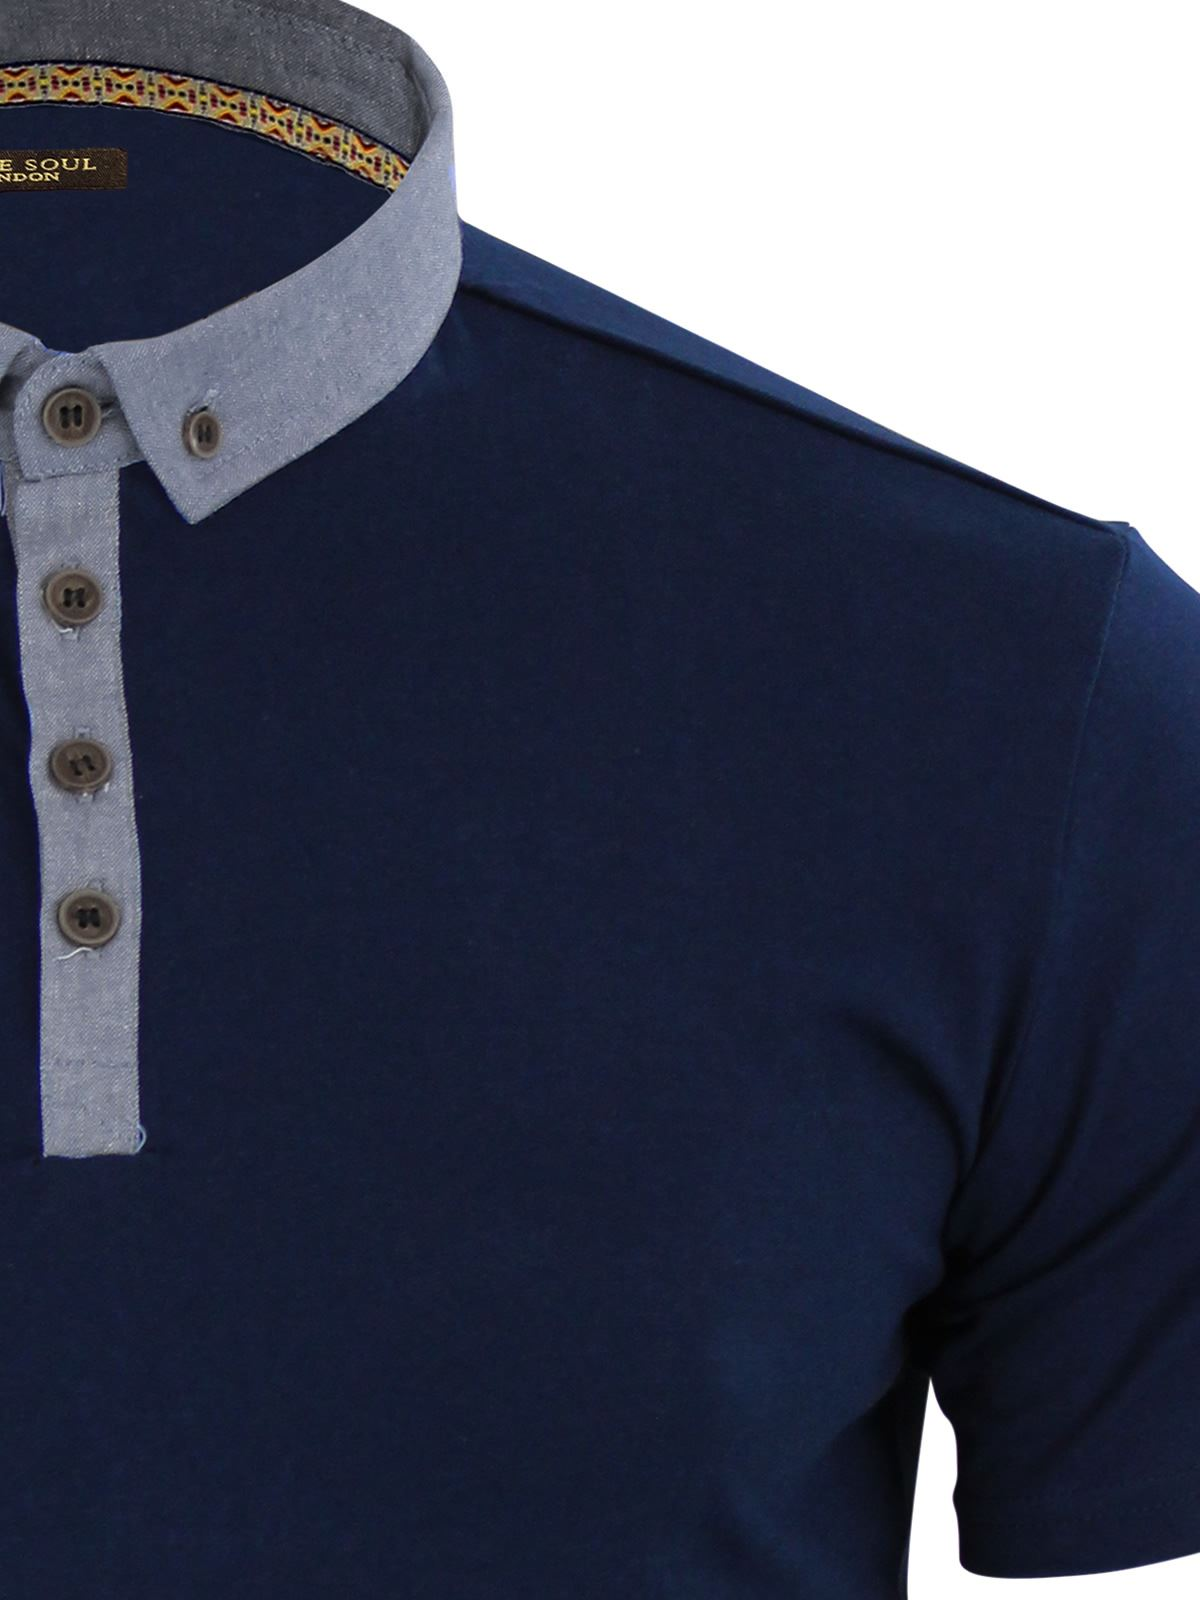 Brave-Soul-Glover-Mens-Polo-T-Shirt-Cotton-Collared-Short-Sleeve-Casual-Top thumbnail 7